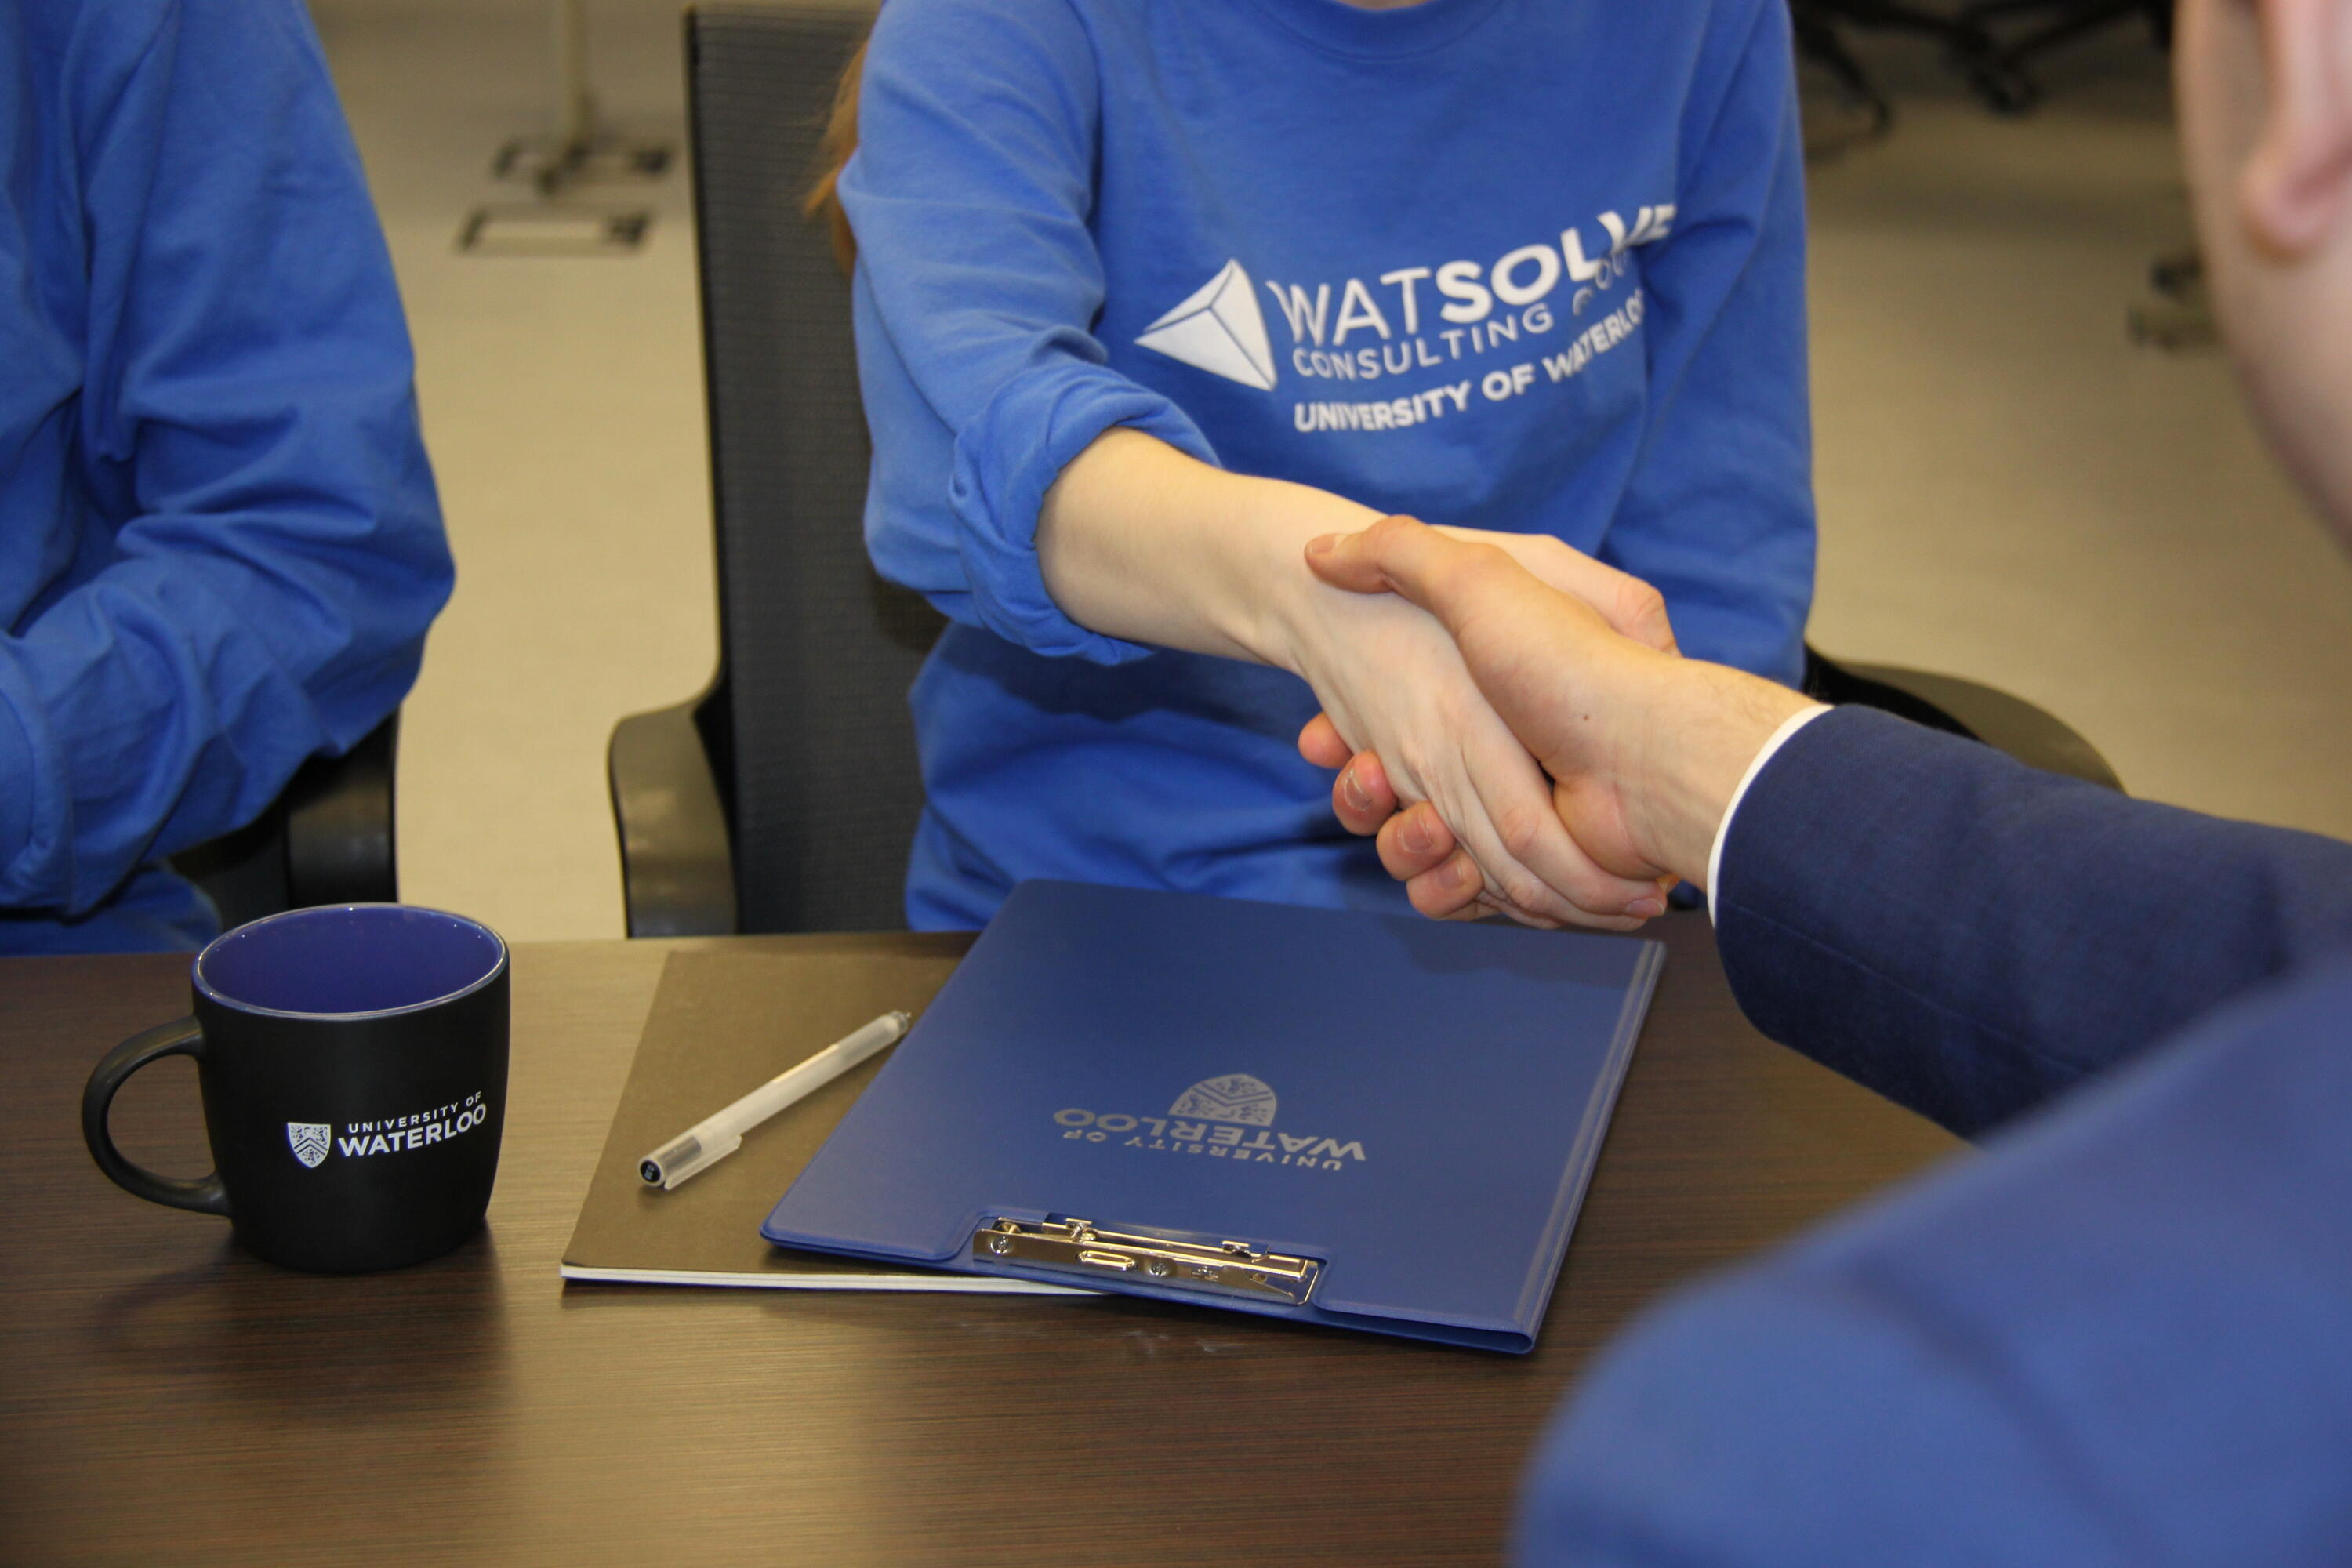 Handshake with blue Waterloo branded mug and notebook on the table.